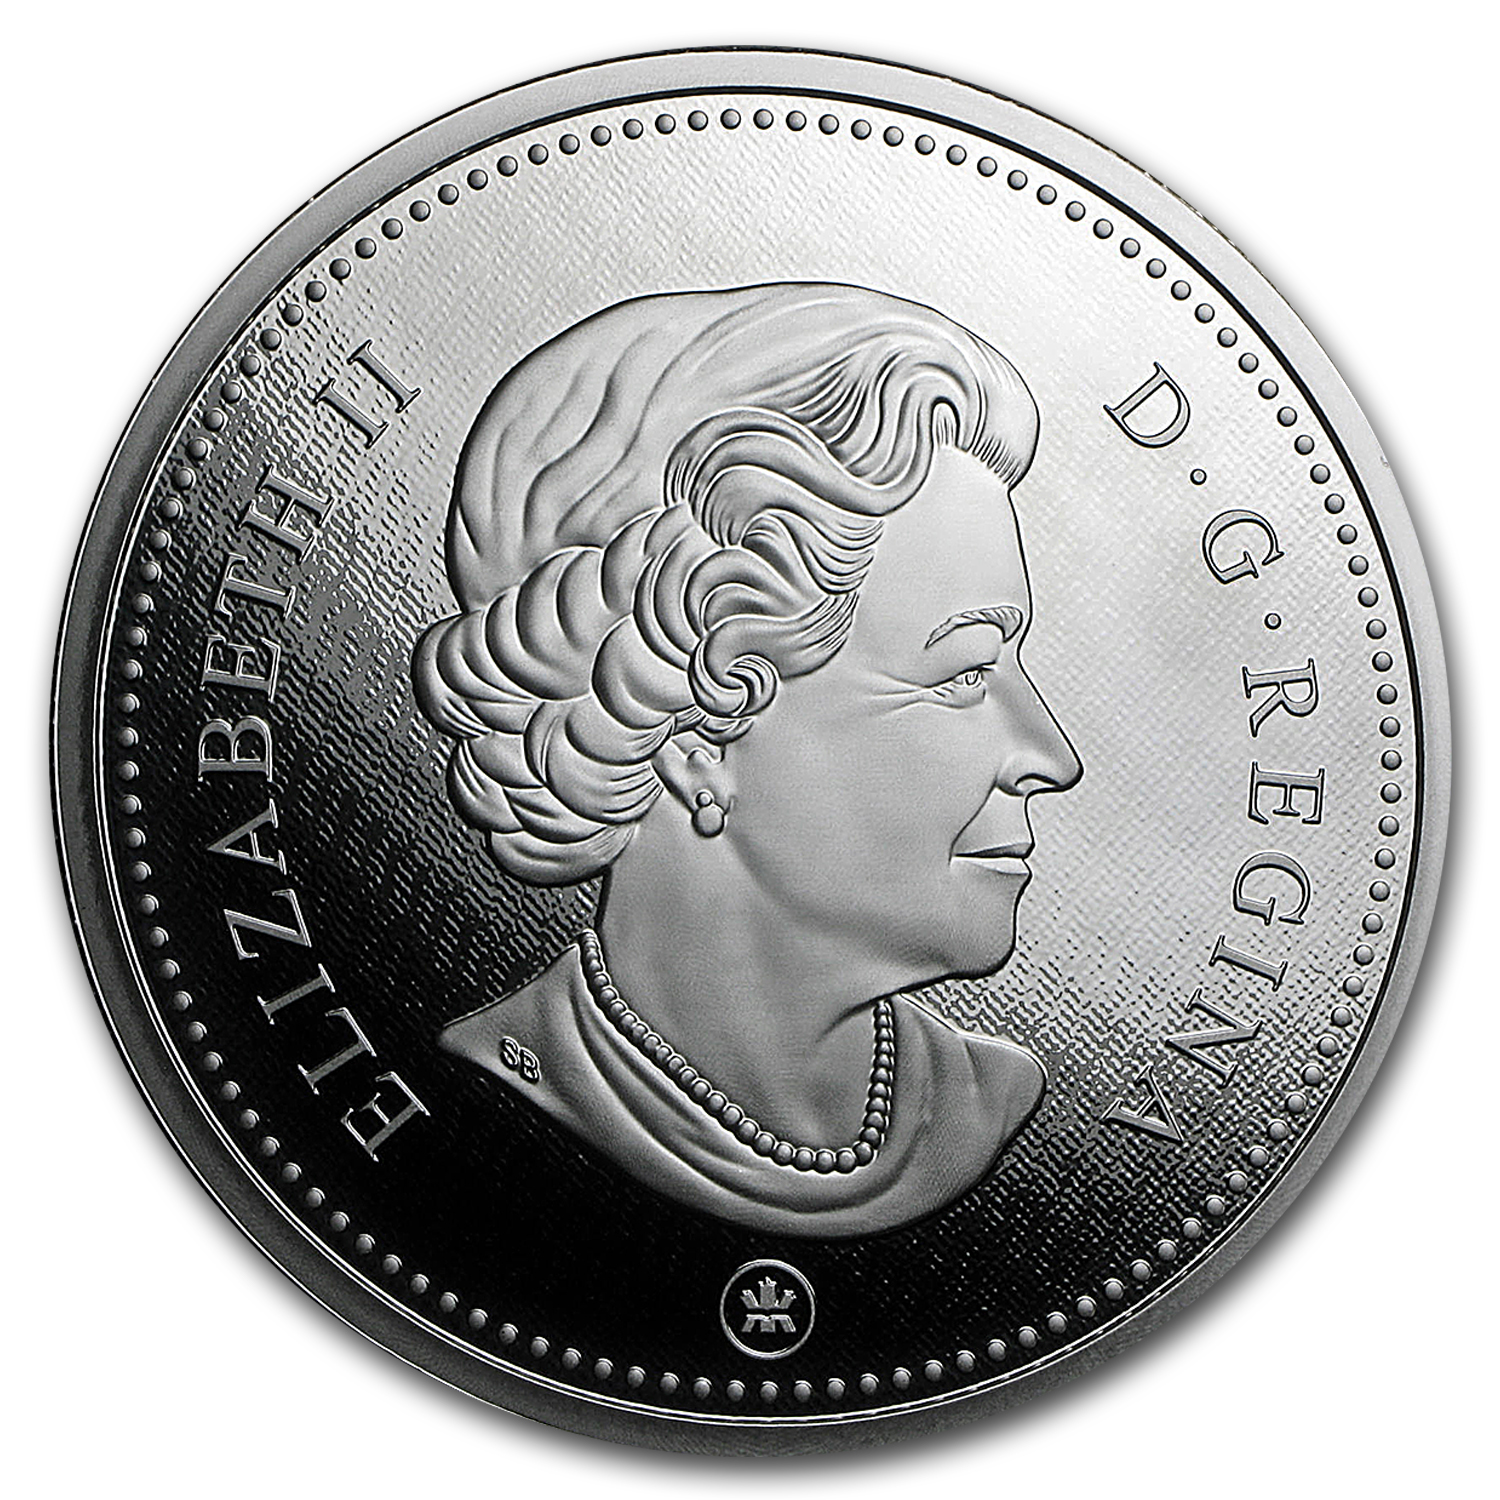 2016 Canada 5 oz Silver $1 Big Coin Series 50 Cent Coin